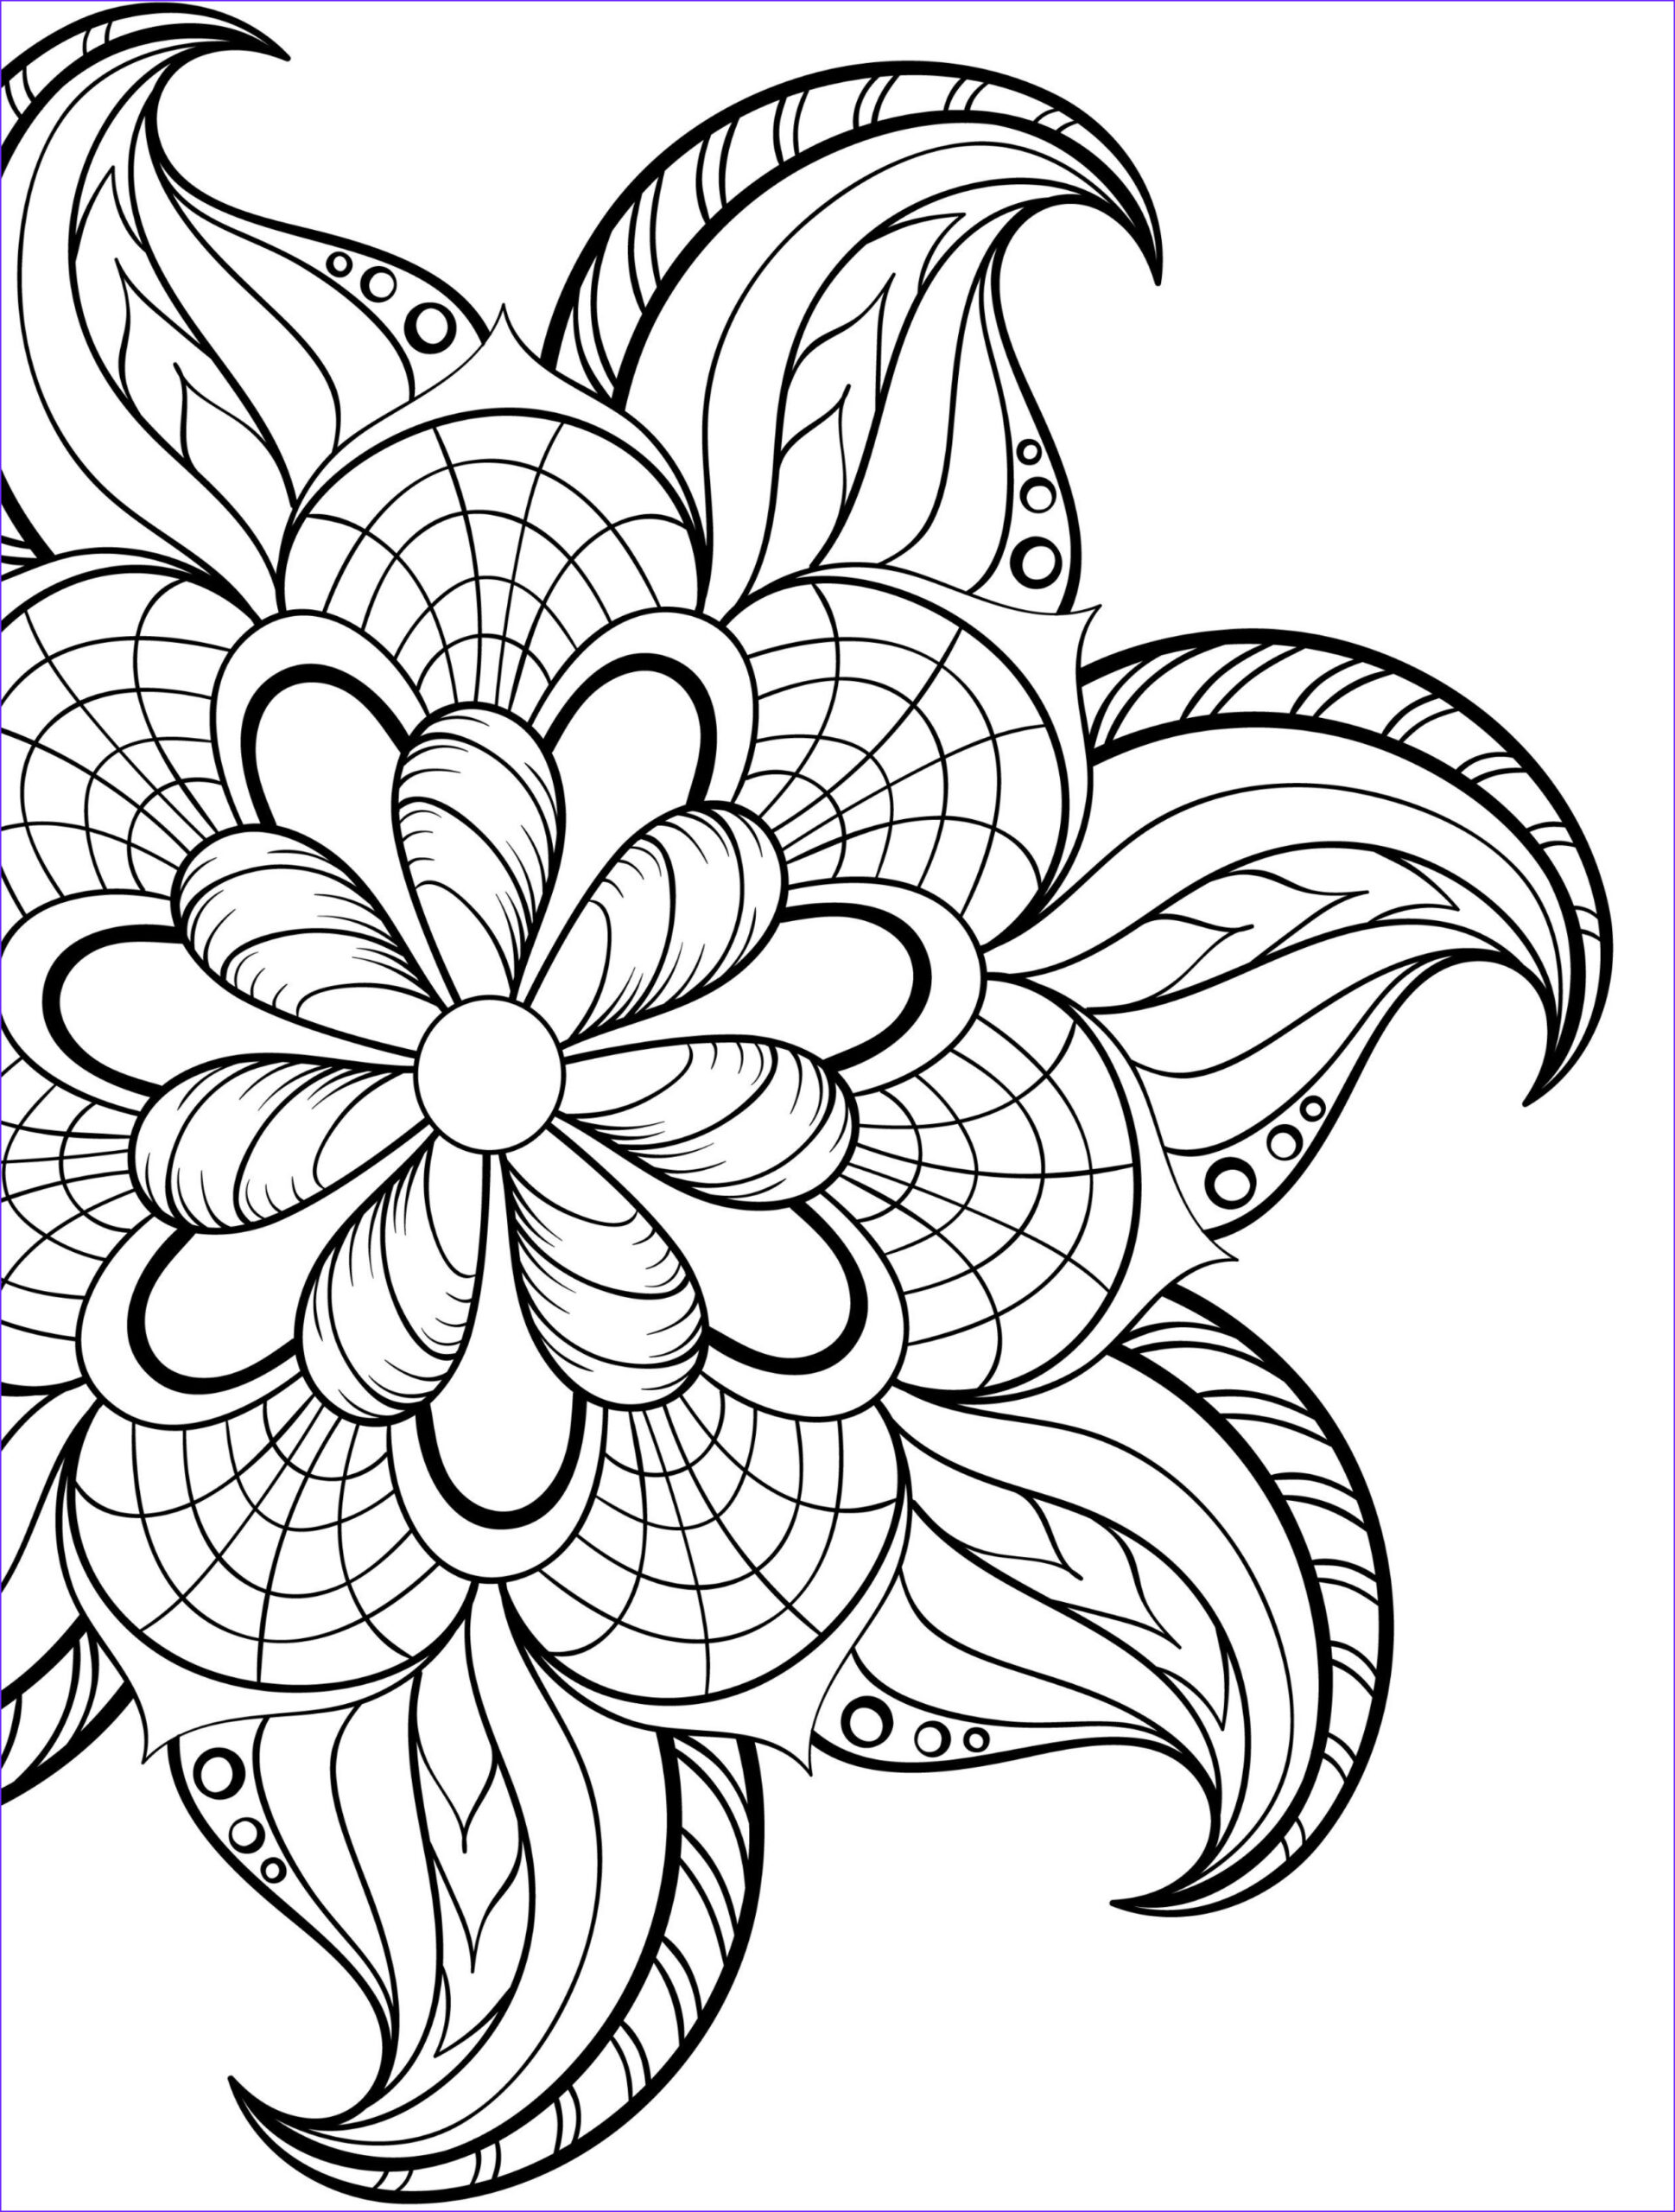 Free Mandala Coloring Pages to Print Cool Images 20 Gorgeous Free Printable Adult Coloring Pages